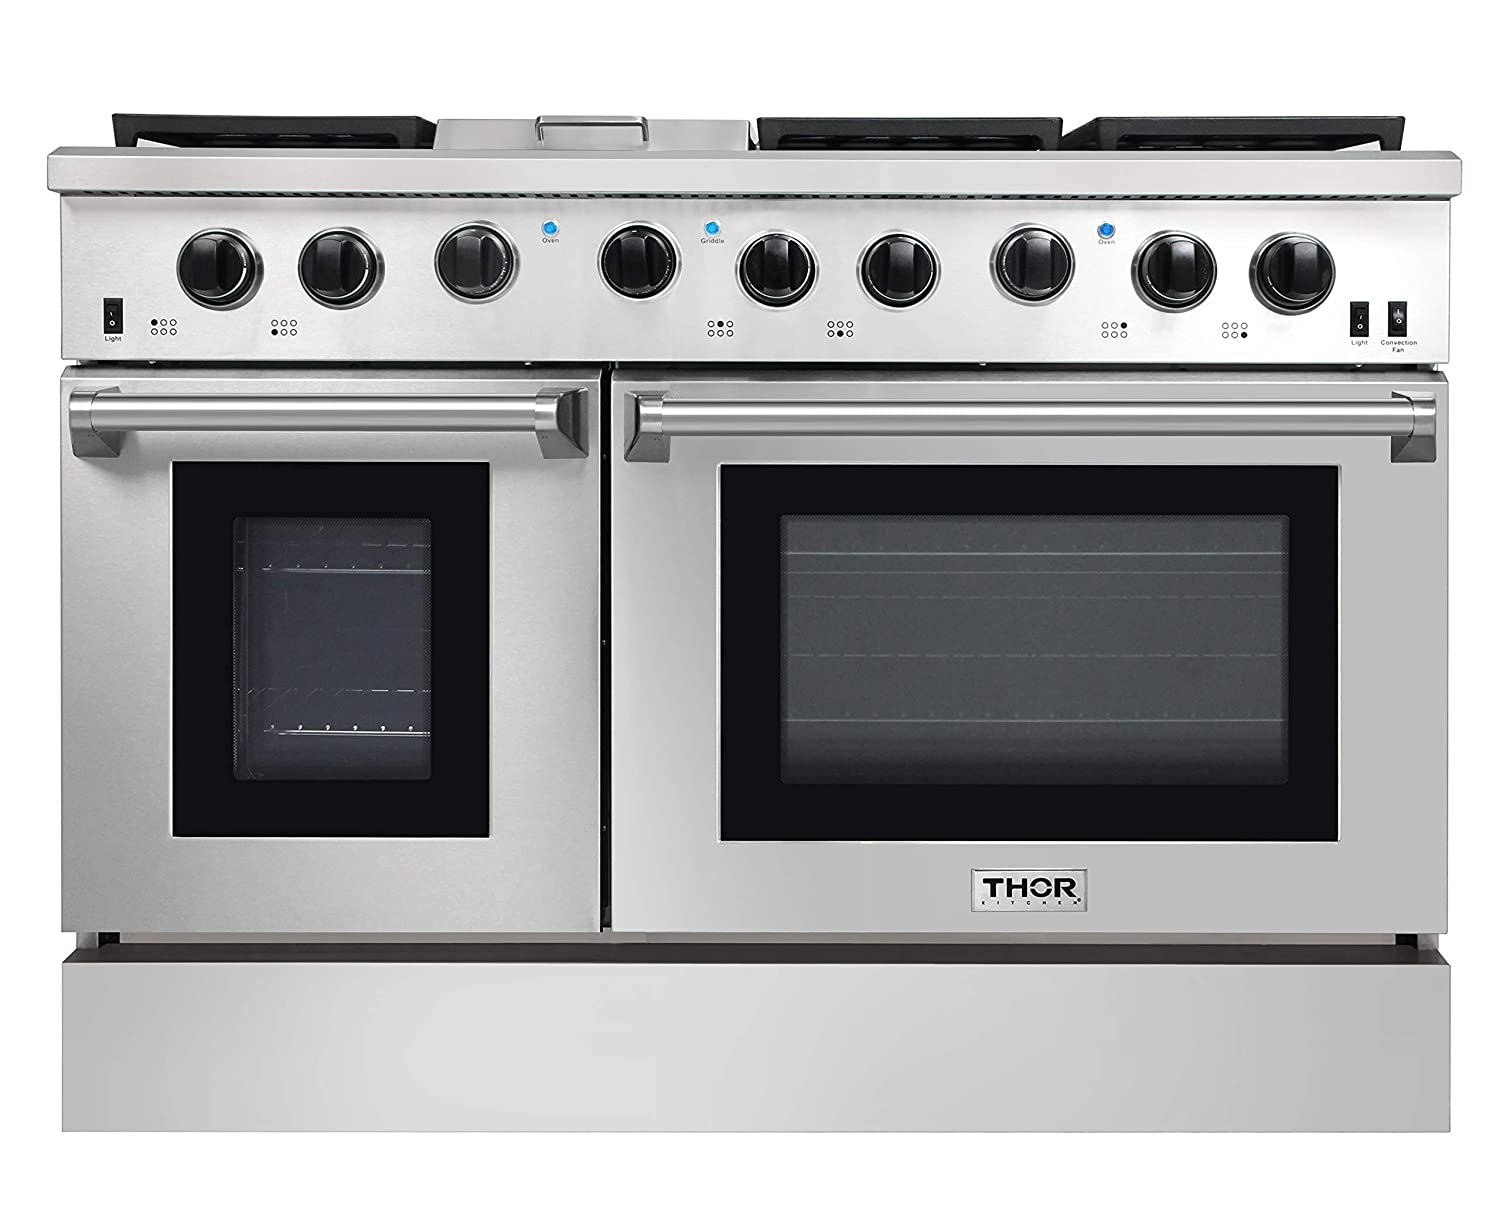 Thor Kitchen 48 Pro- Style Range, Natural Gas or Propane Gas Stainless Steel